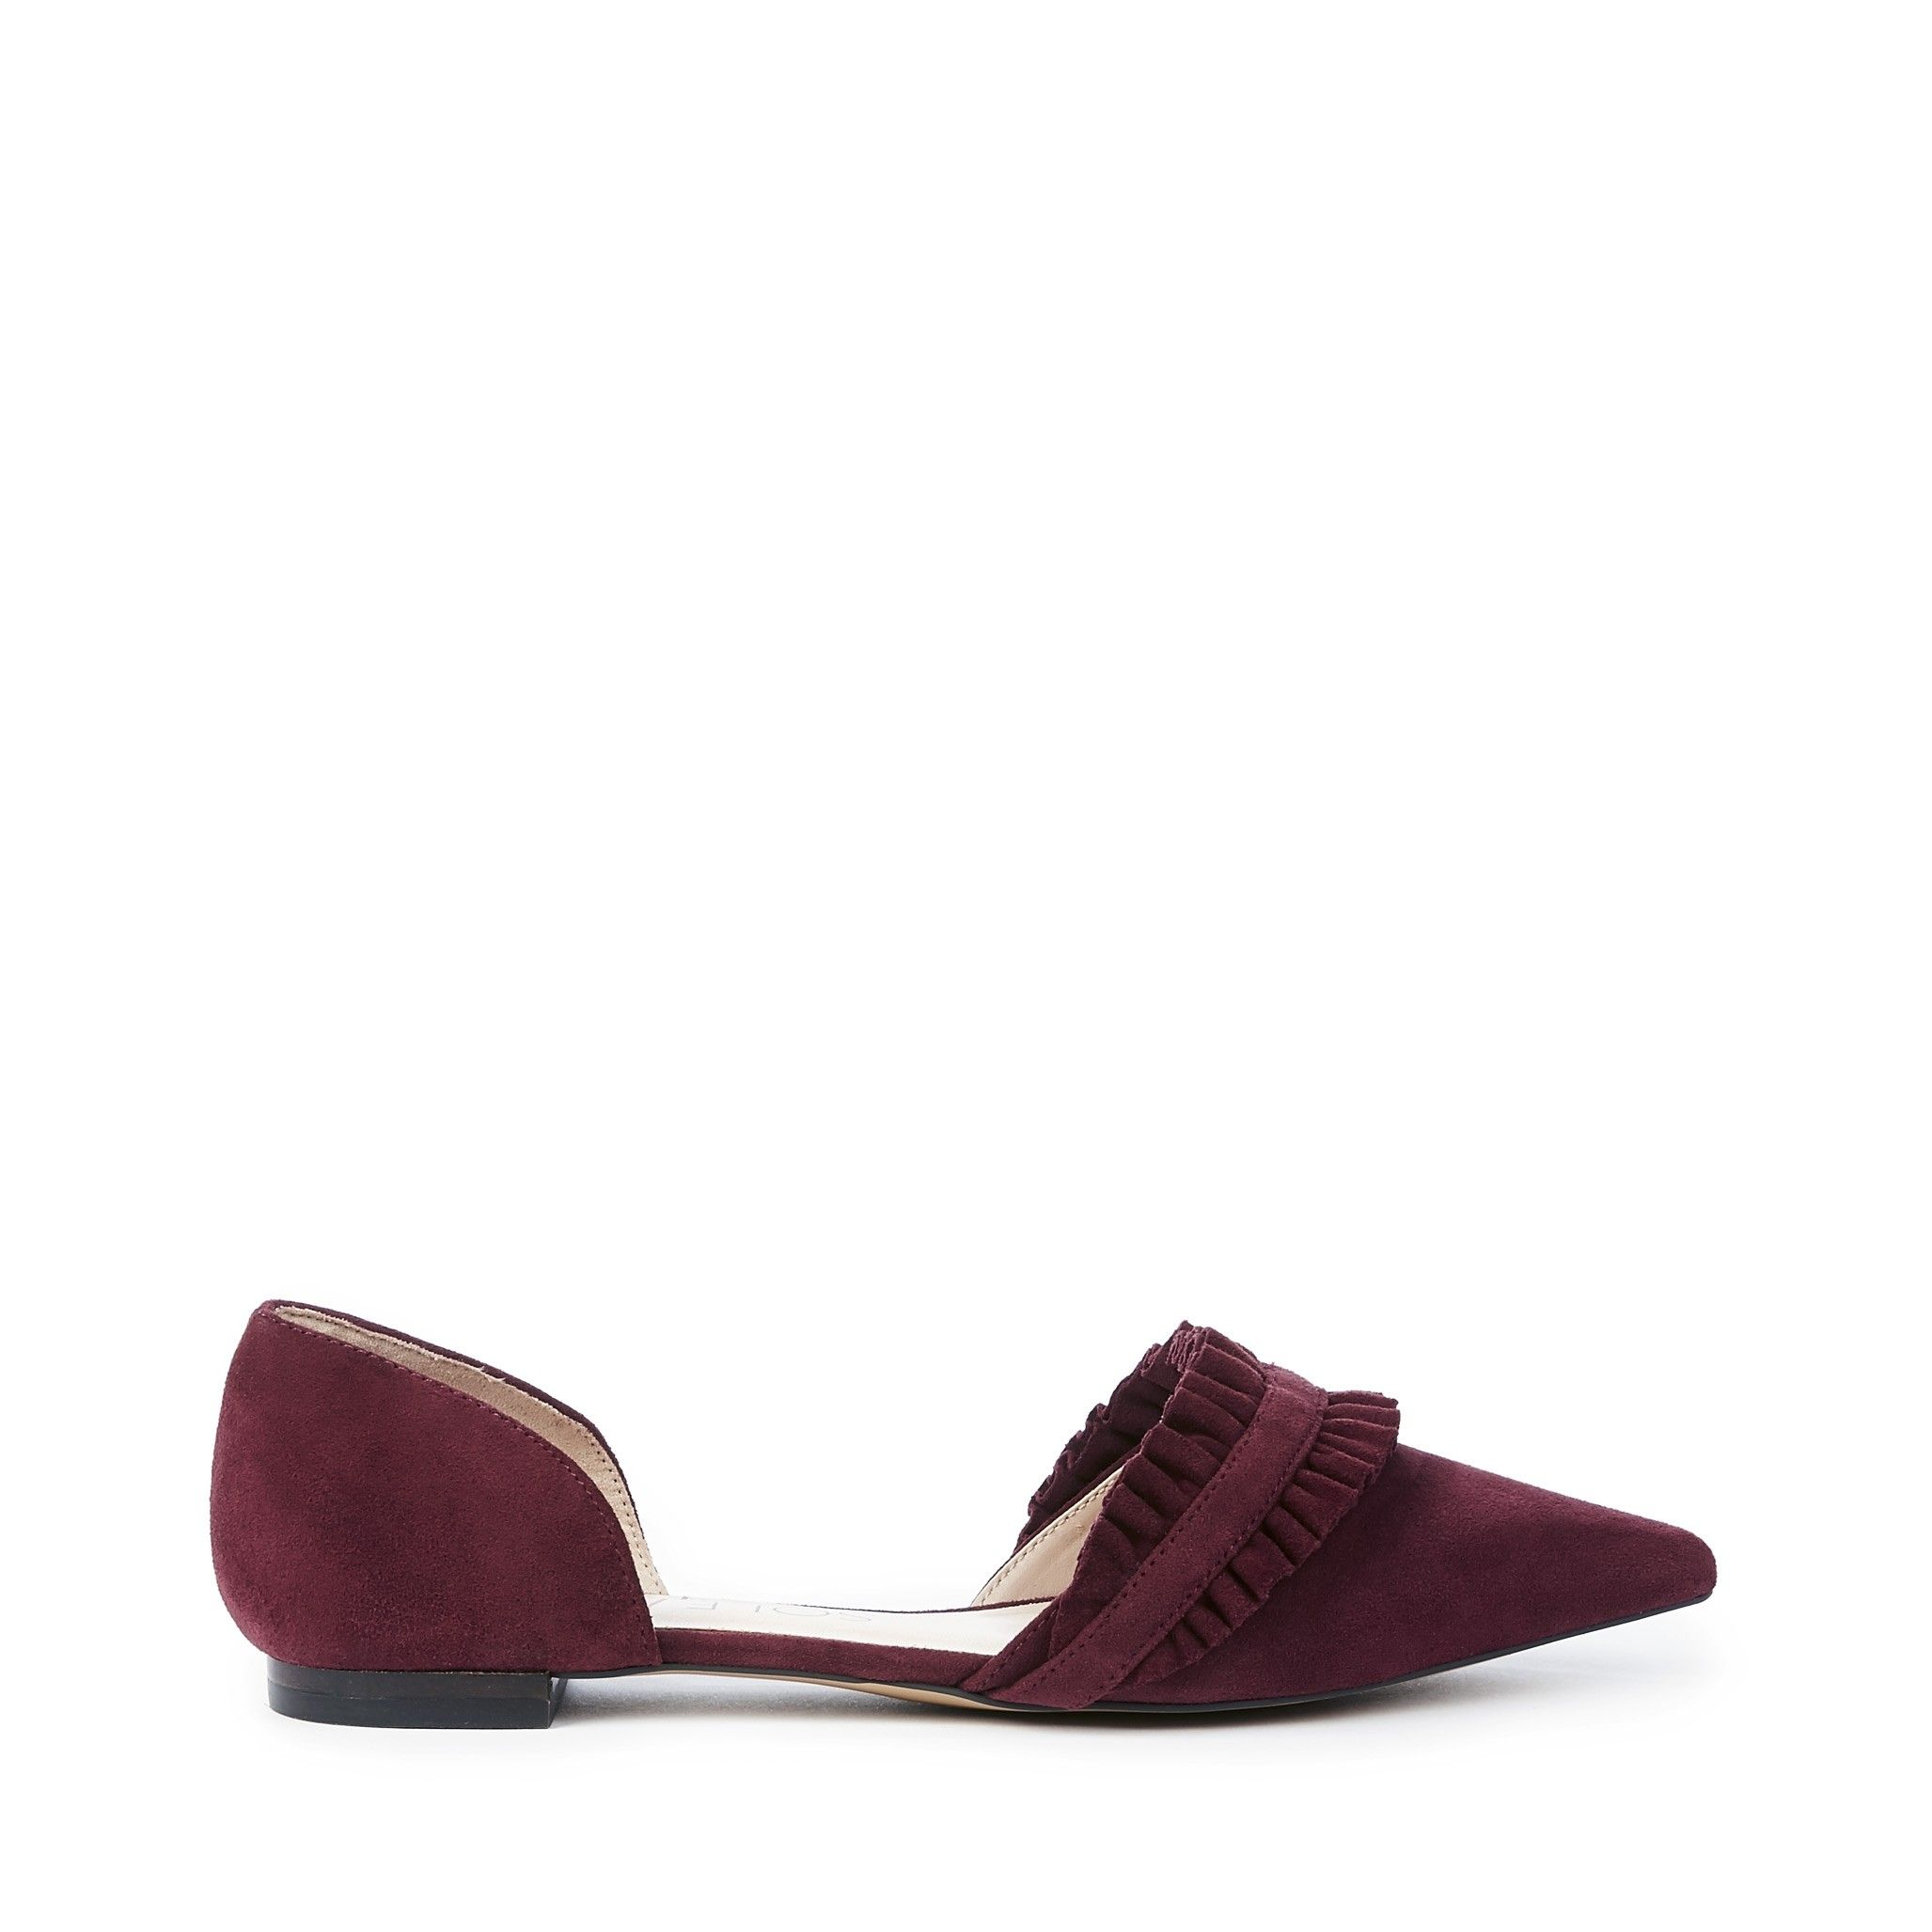 Sole Society Women's Rosalind Ruffle D'Orsay Flat nqRXJuG